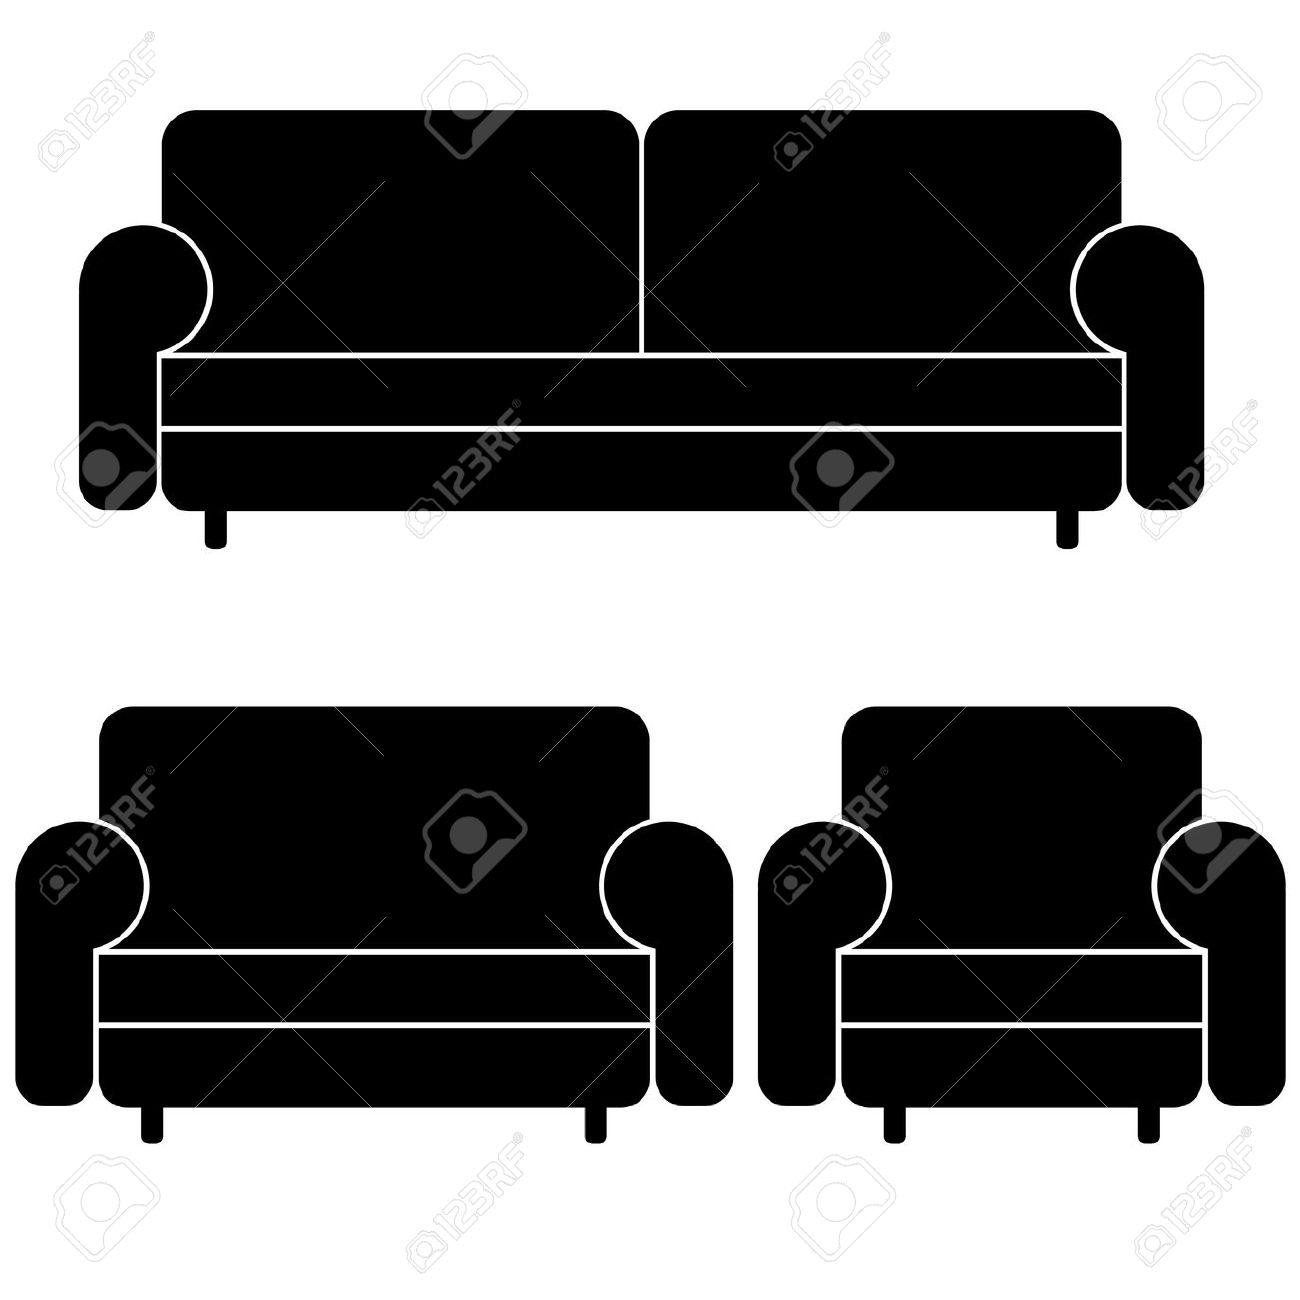 Couches Clipart